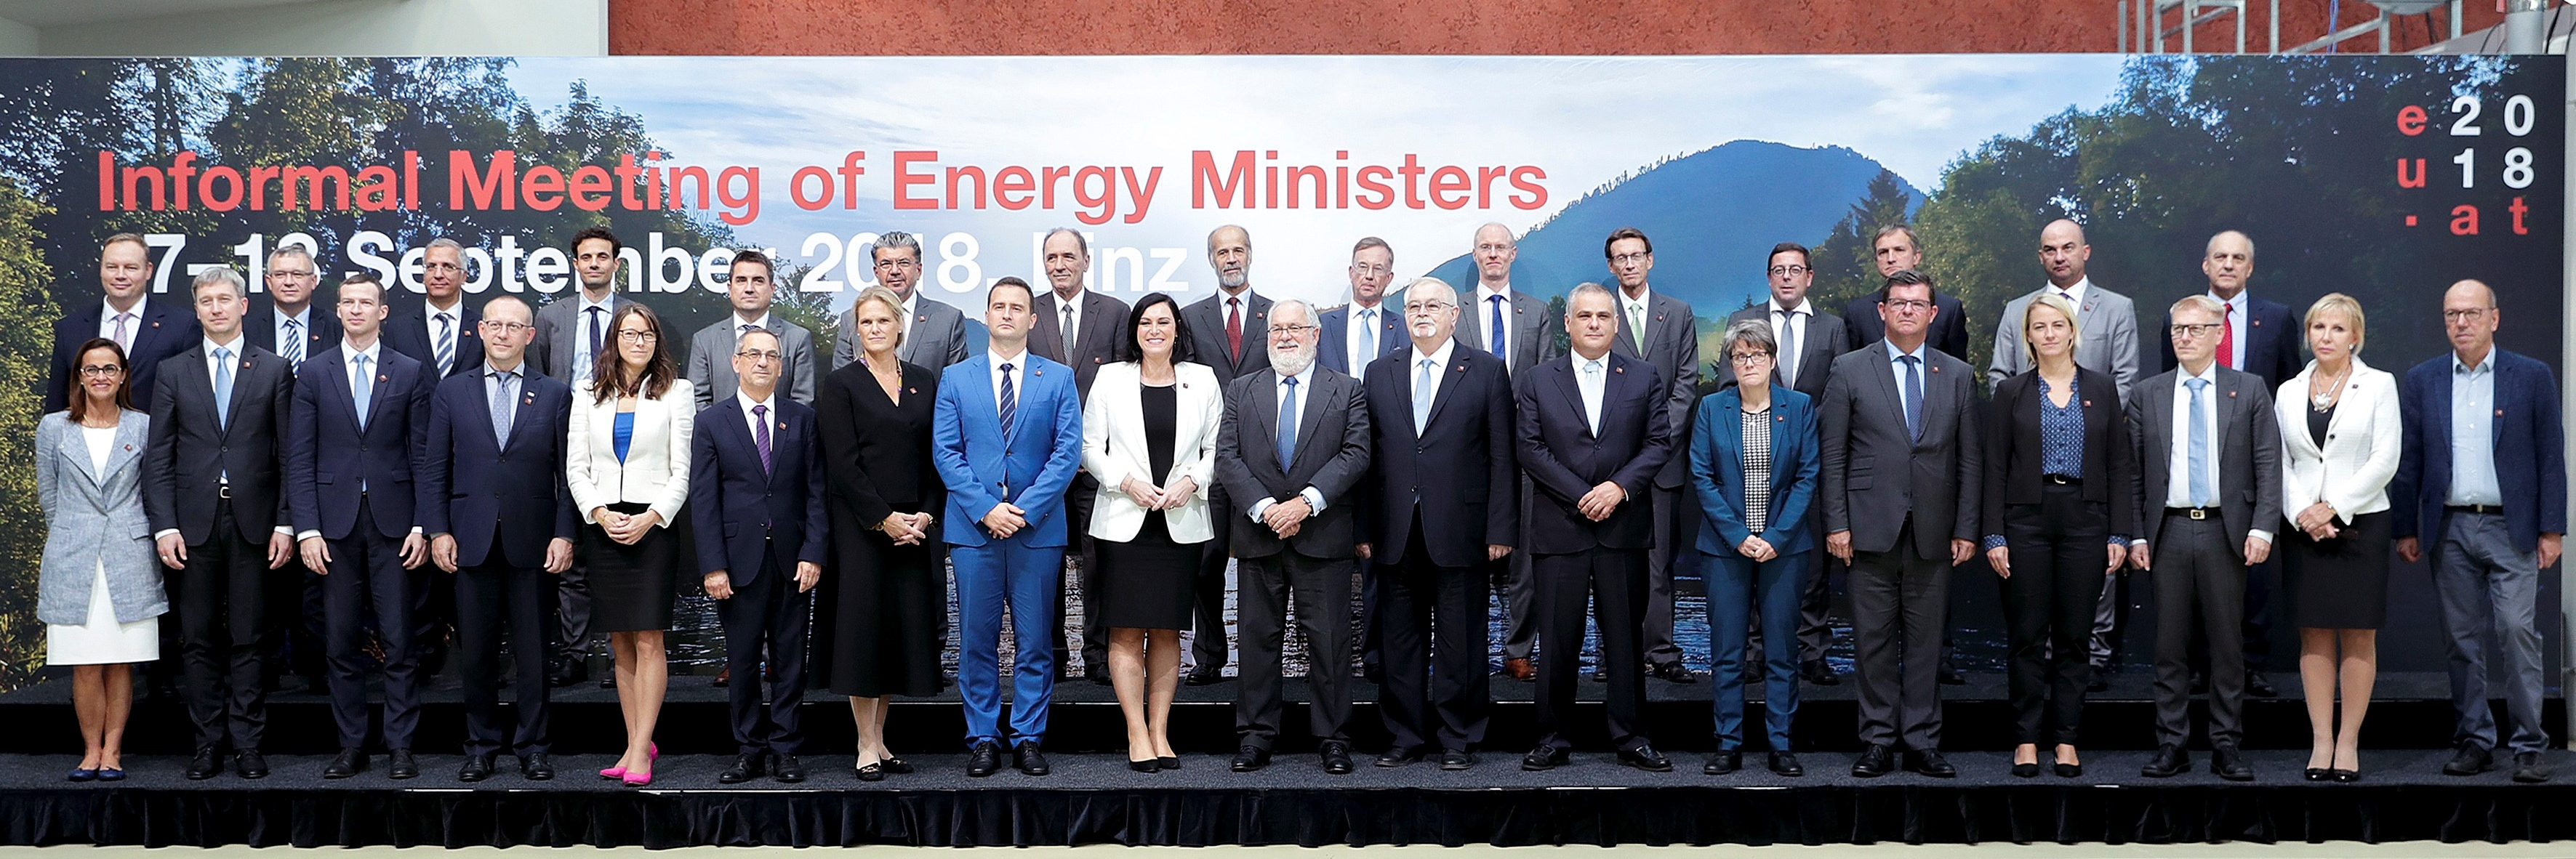 Informal meeting for Energy ministers Linz